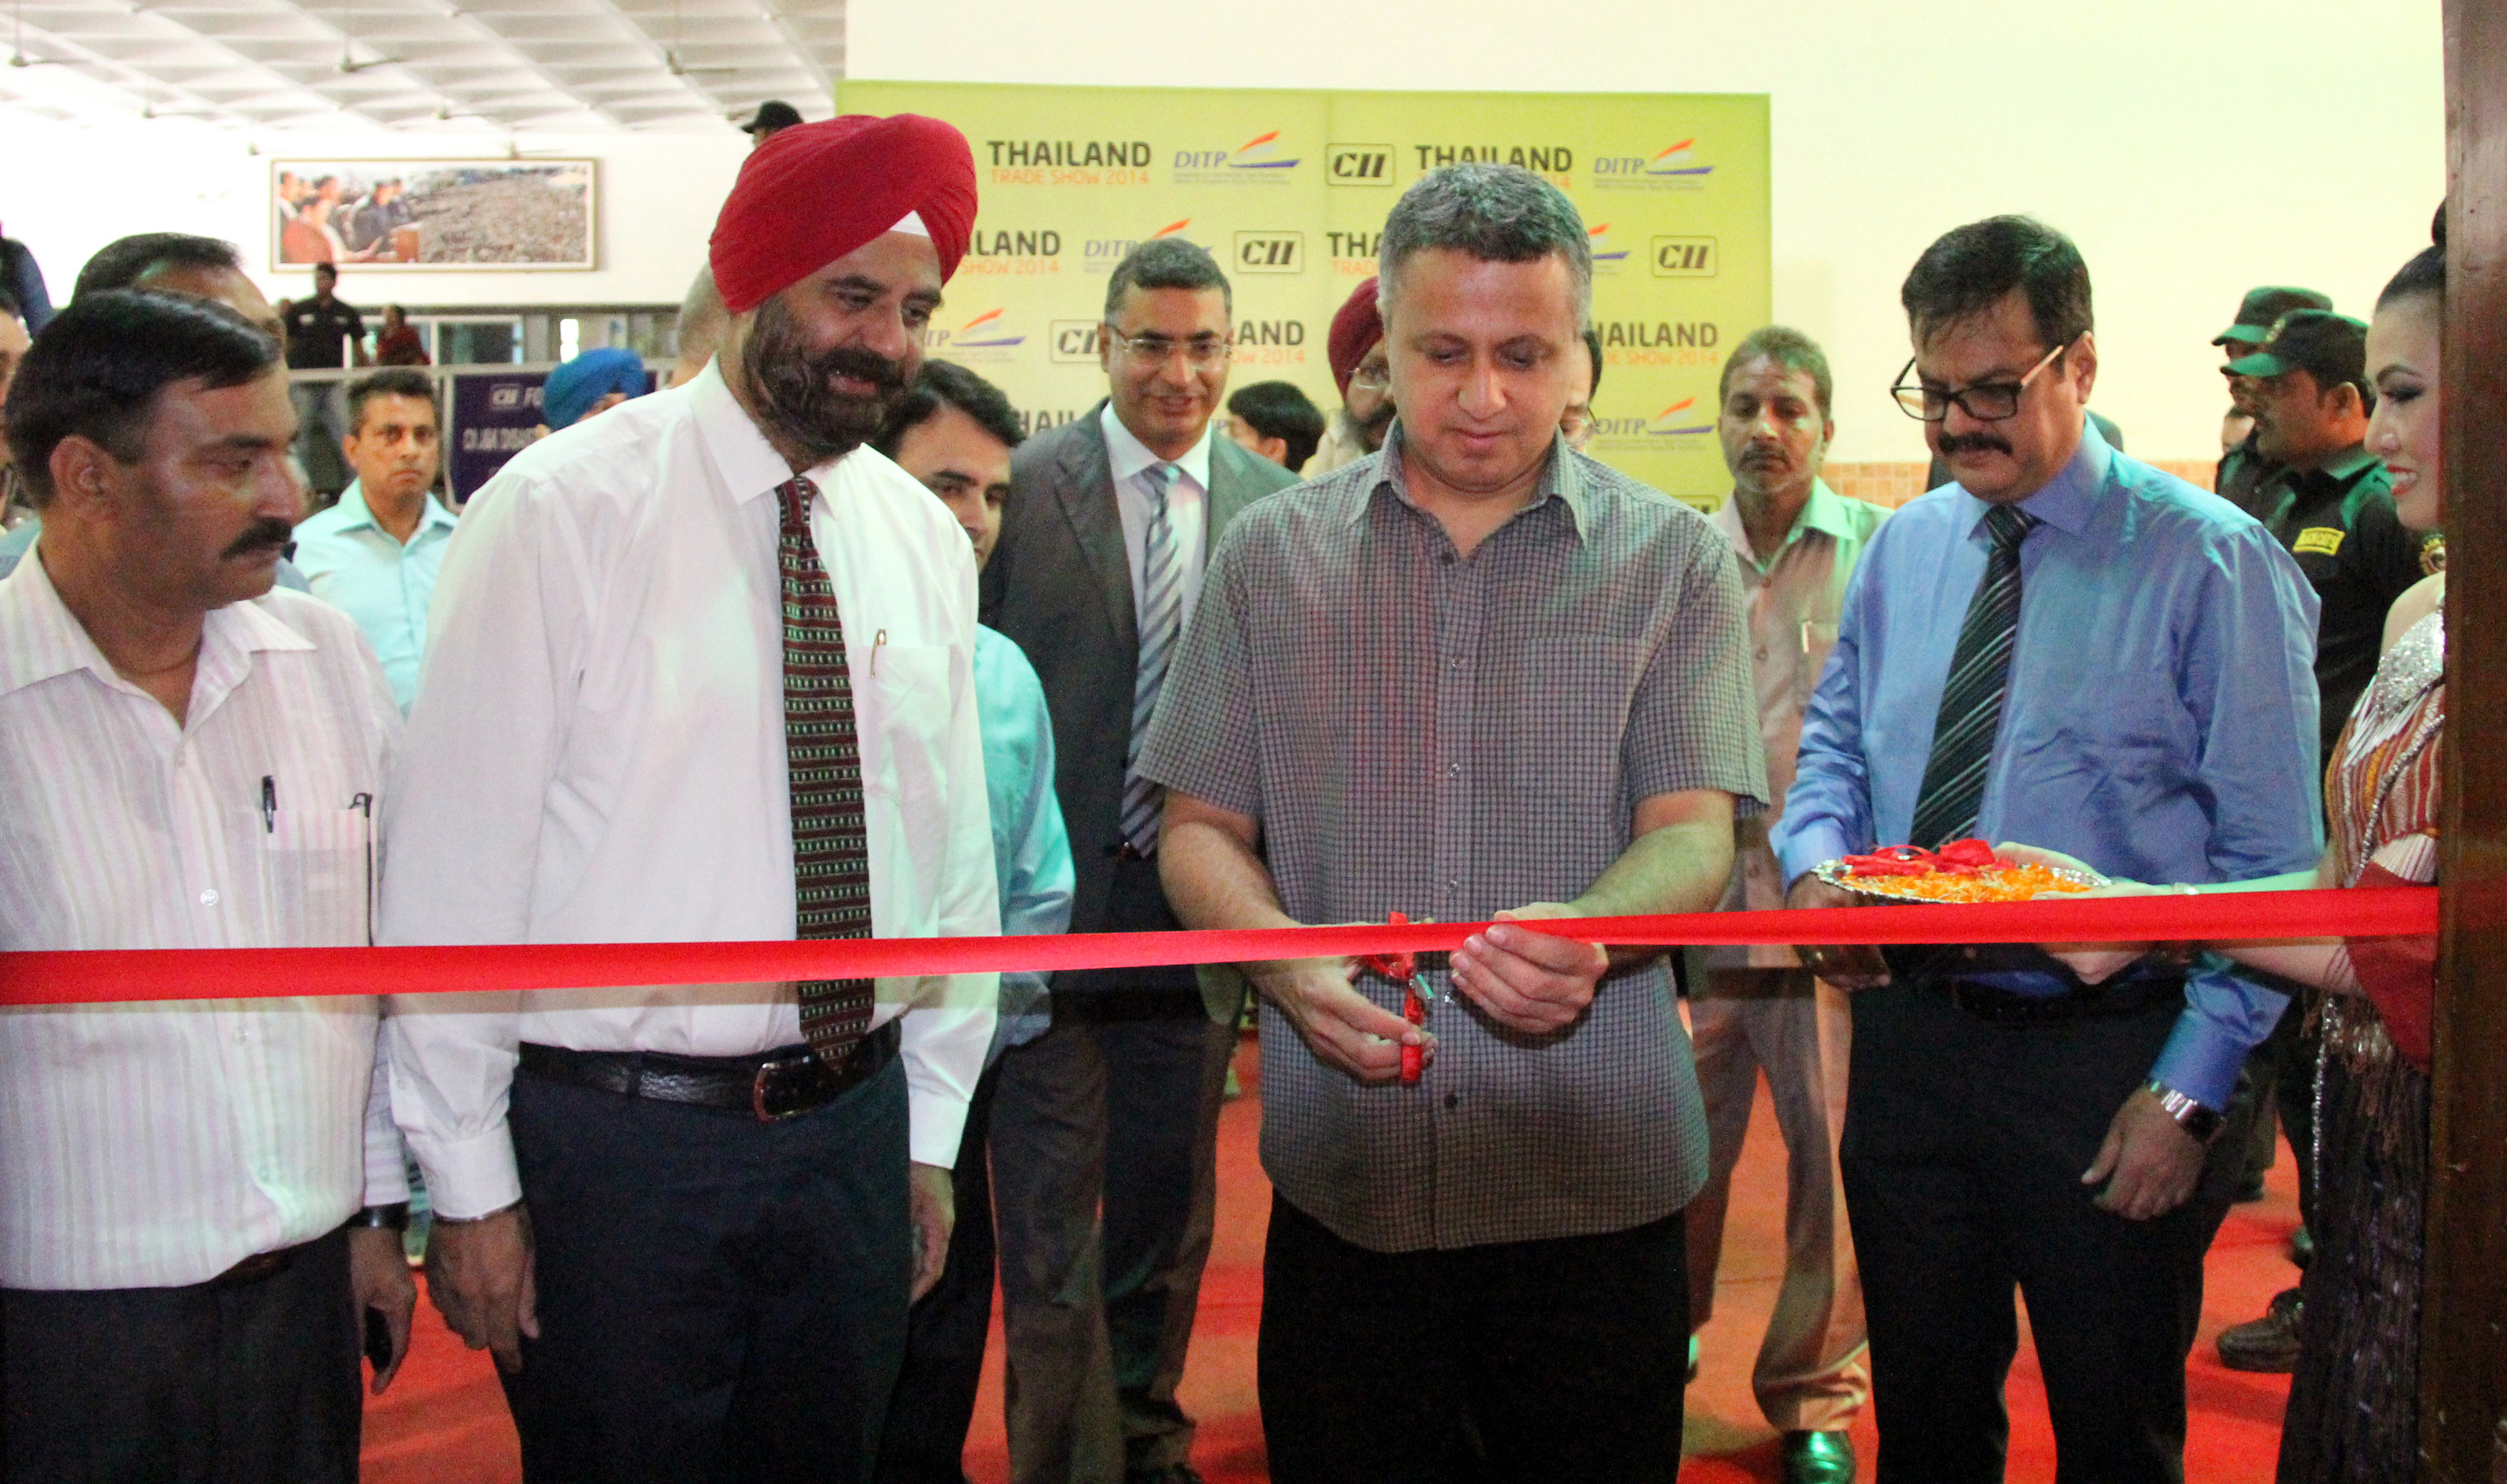 UT Finance Secretary, Mr. Sarvjit Singh inaugurating the THAILAND TRADE SHOW-2014 at Himachal Bhawan, Sector-28, Chandigarh on Wednesday, September 17, 2014.